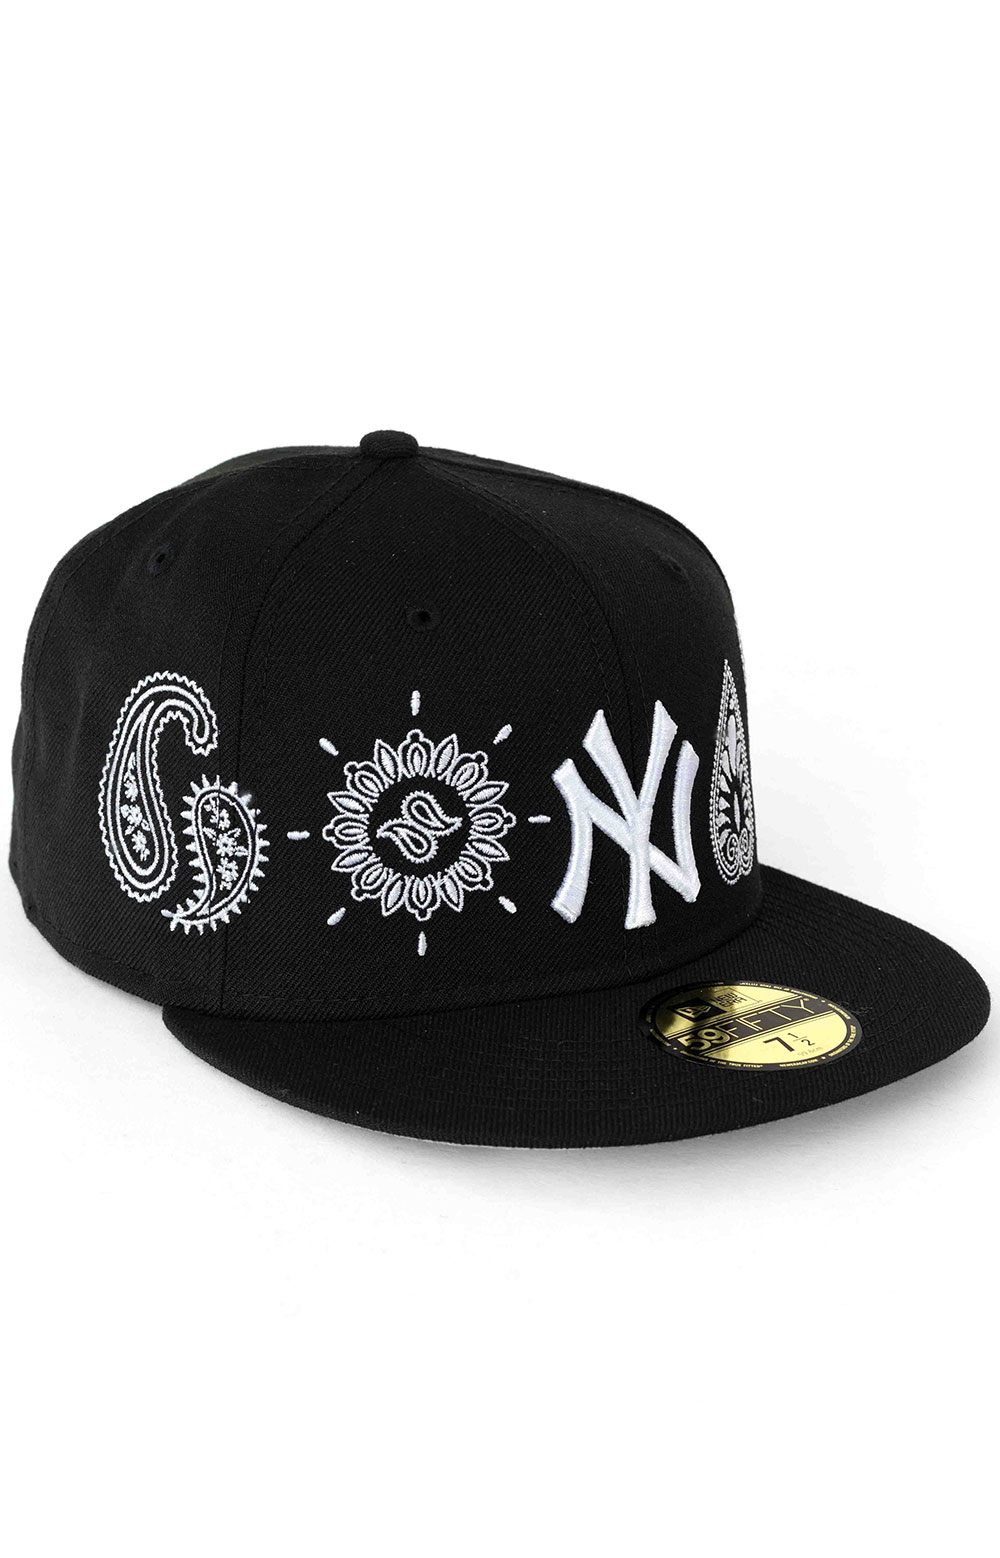 59Fifty New York Yankees Paisley Elements Fitted Hat - Black  3